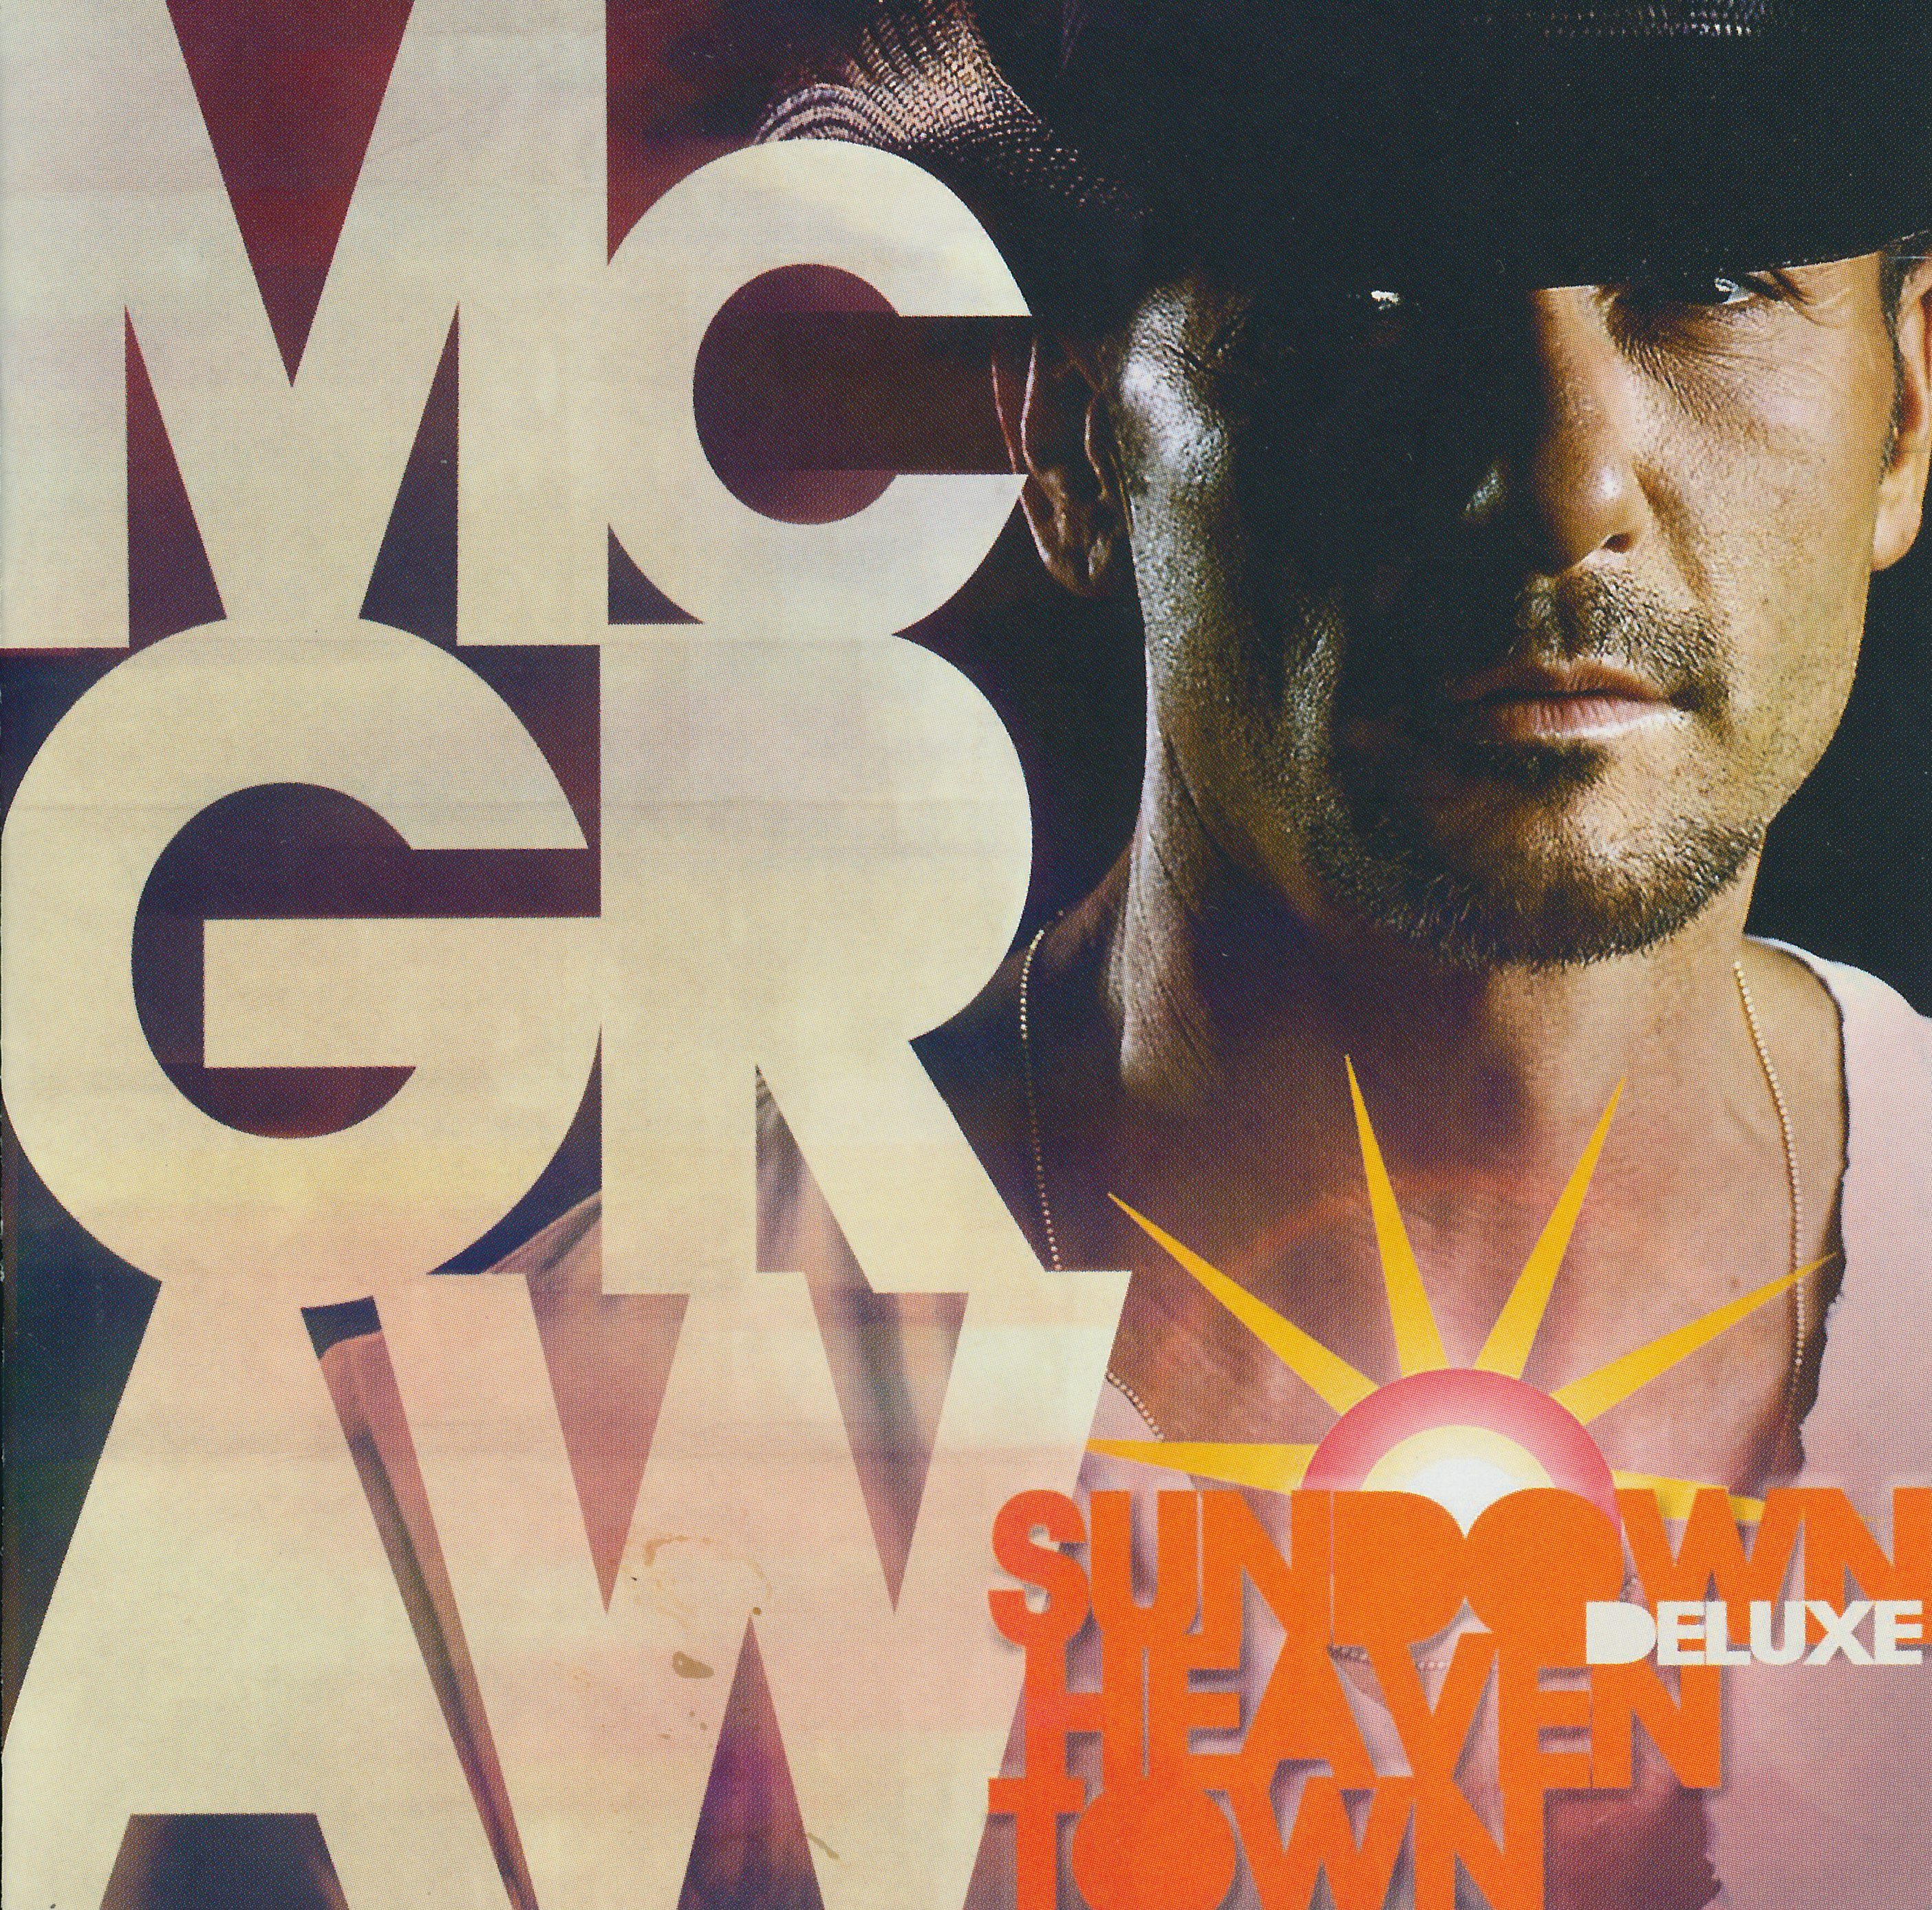 Tim McGraw - Sundown Heaven Town album cover